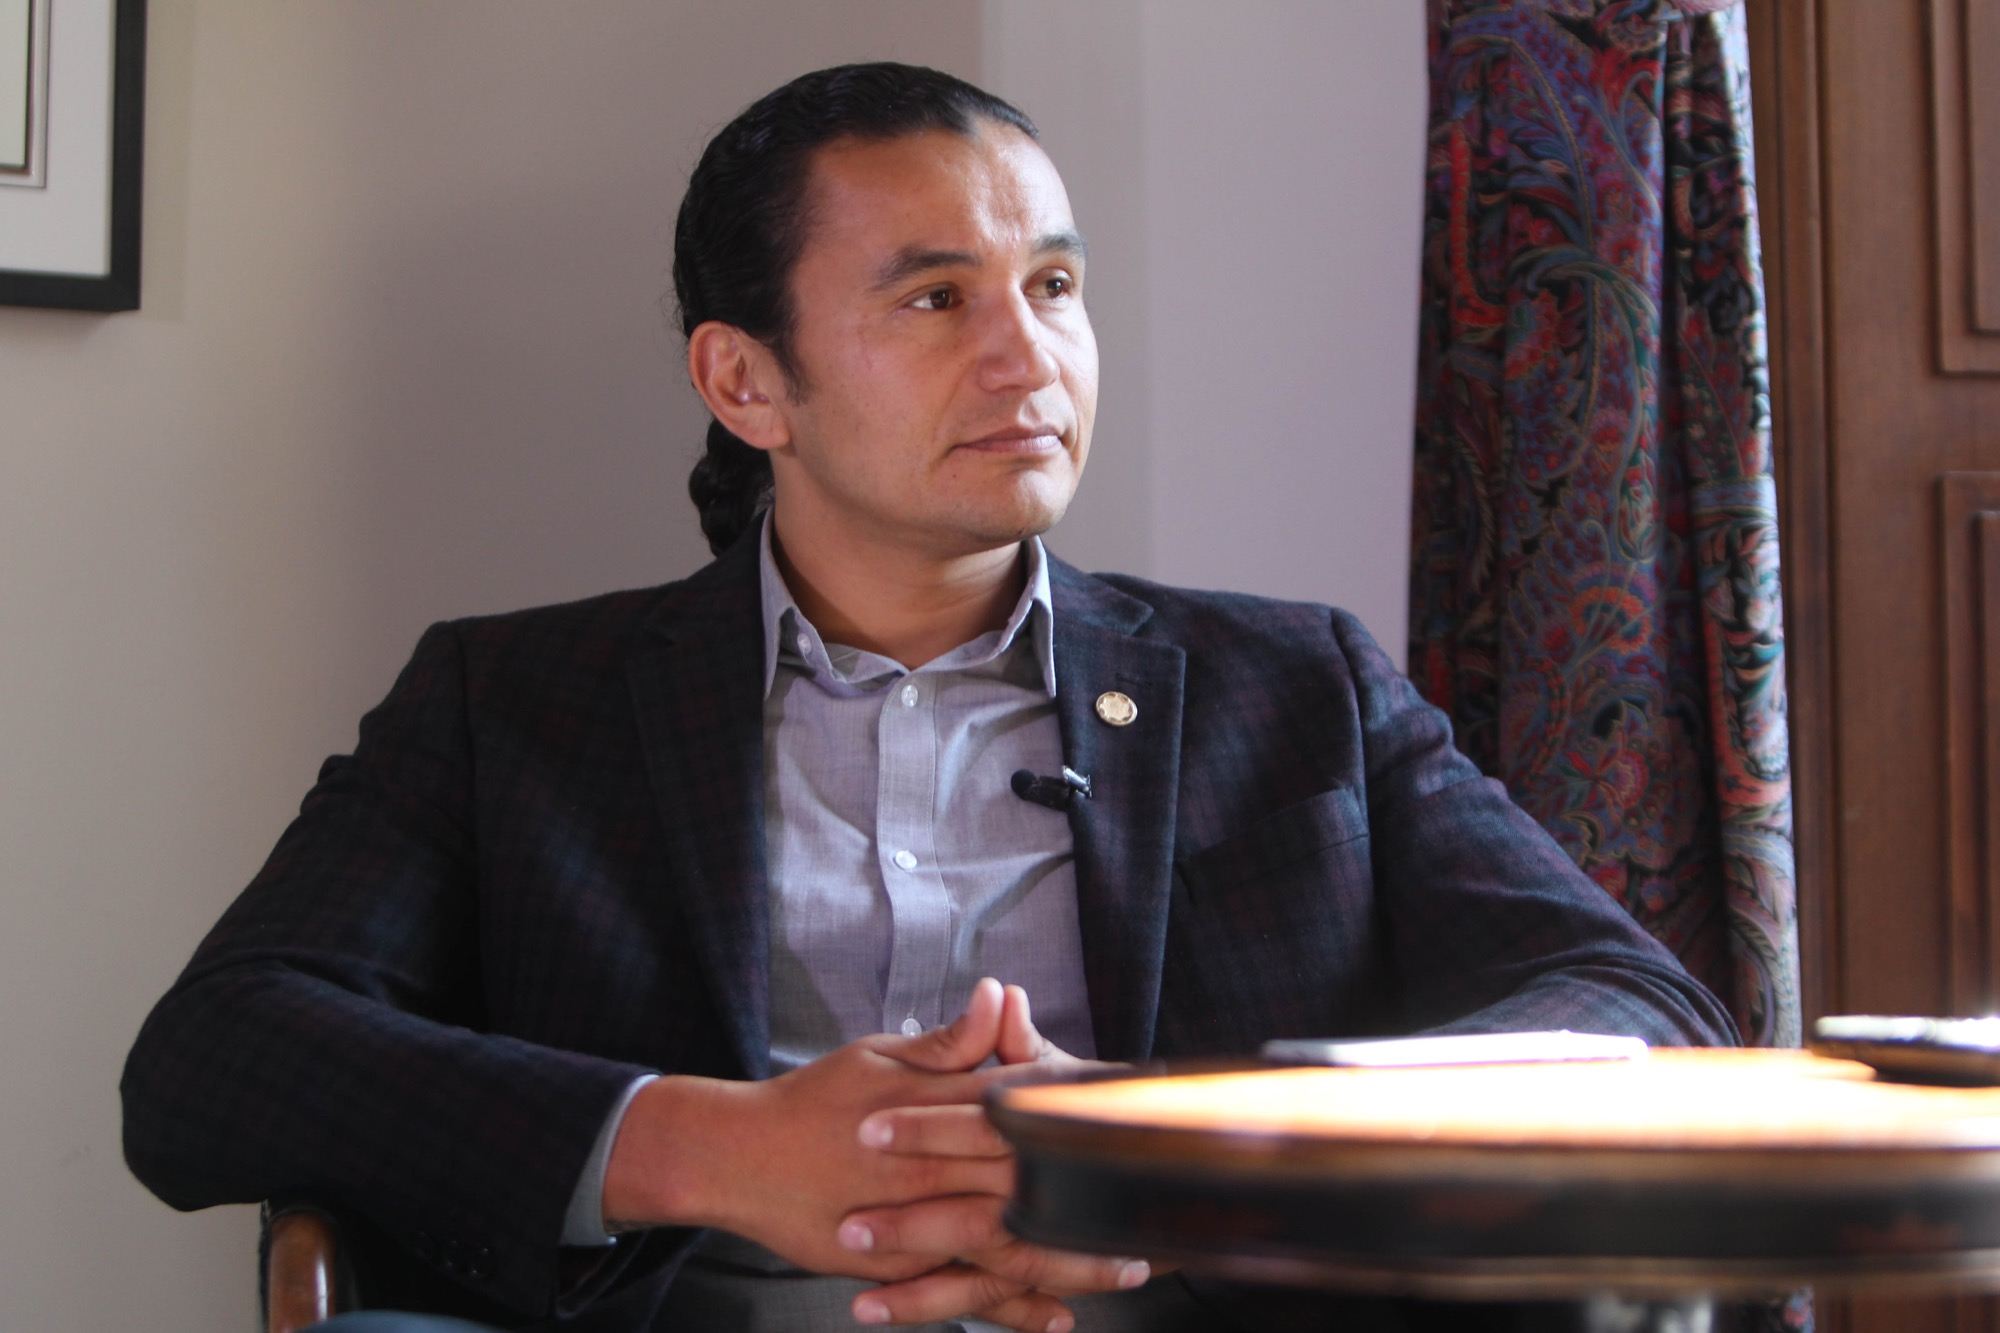 Manitoba NDP Leader Wab Kinew is seen in his new Official Opposition office while being interviewed by the Winnipeg Free Press on Sept. 18.